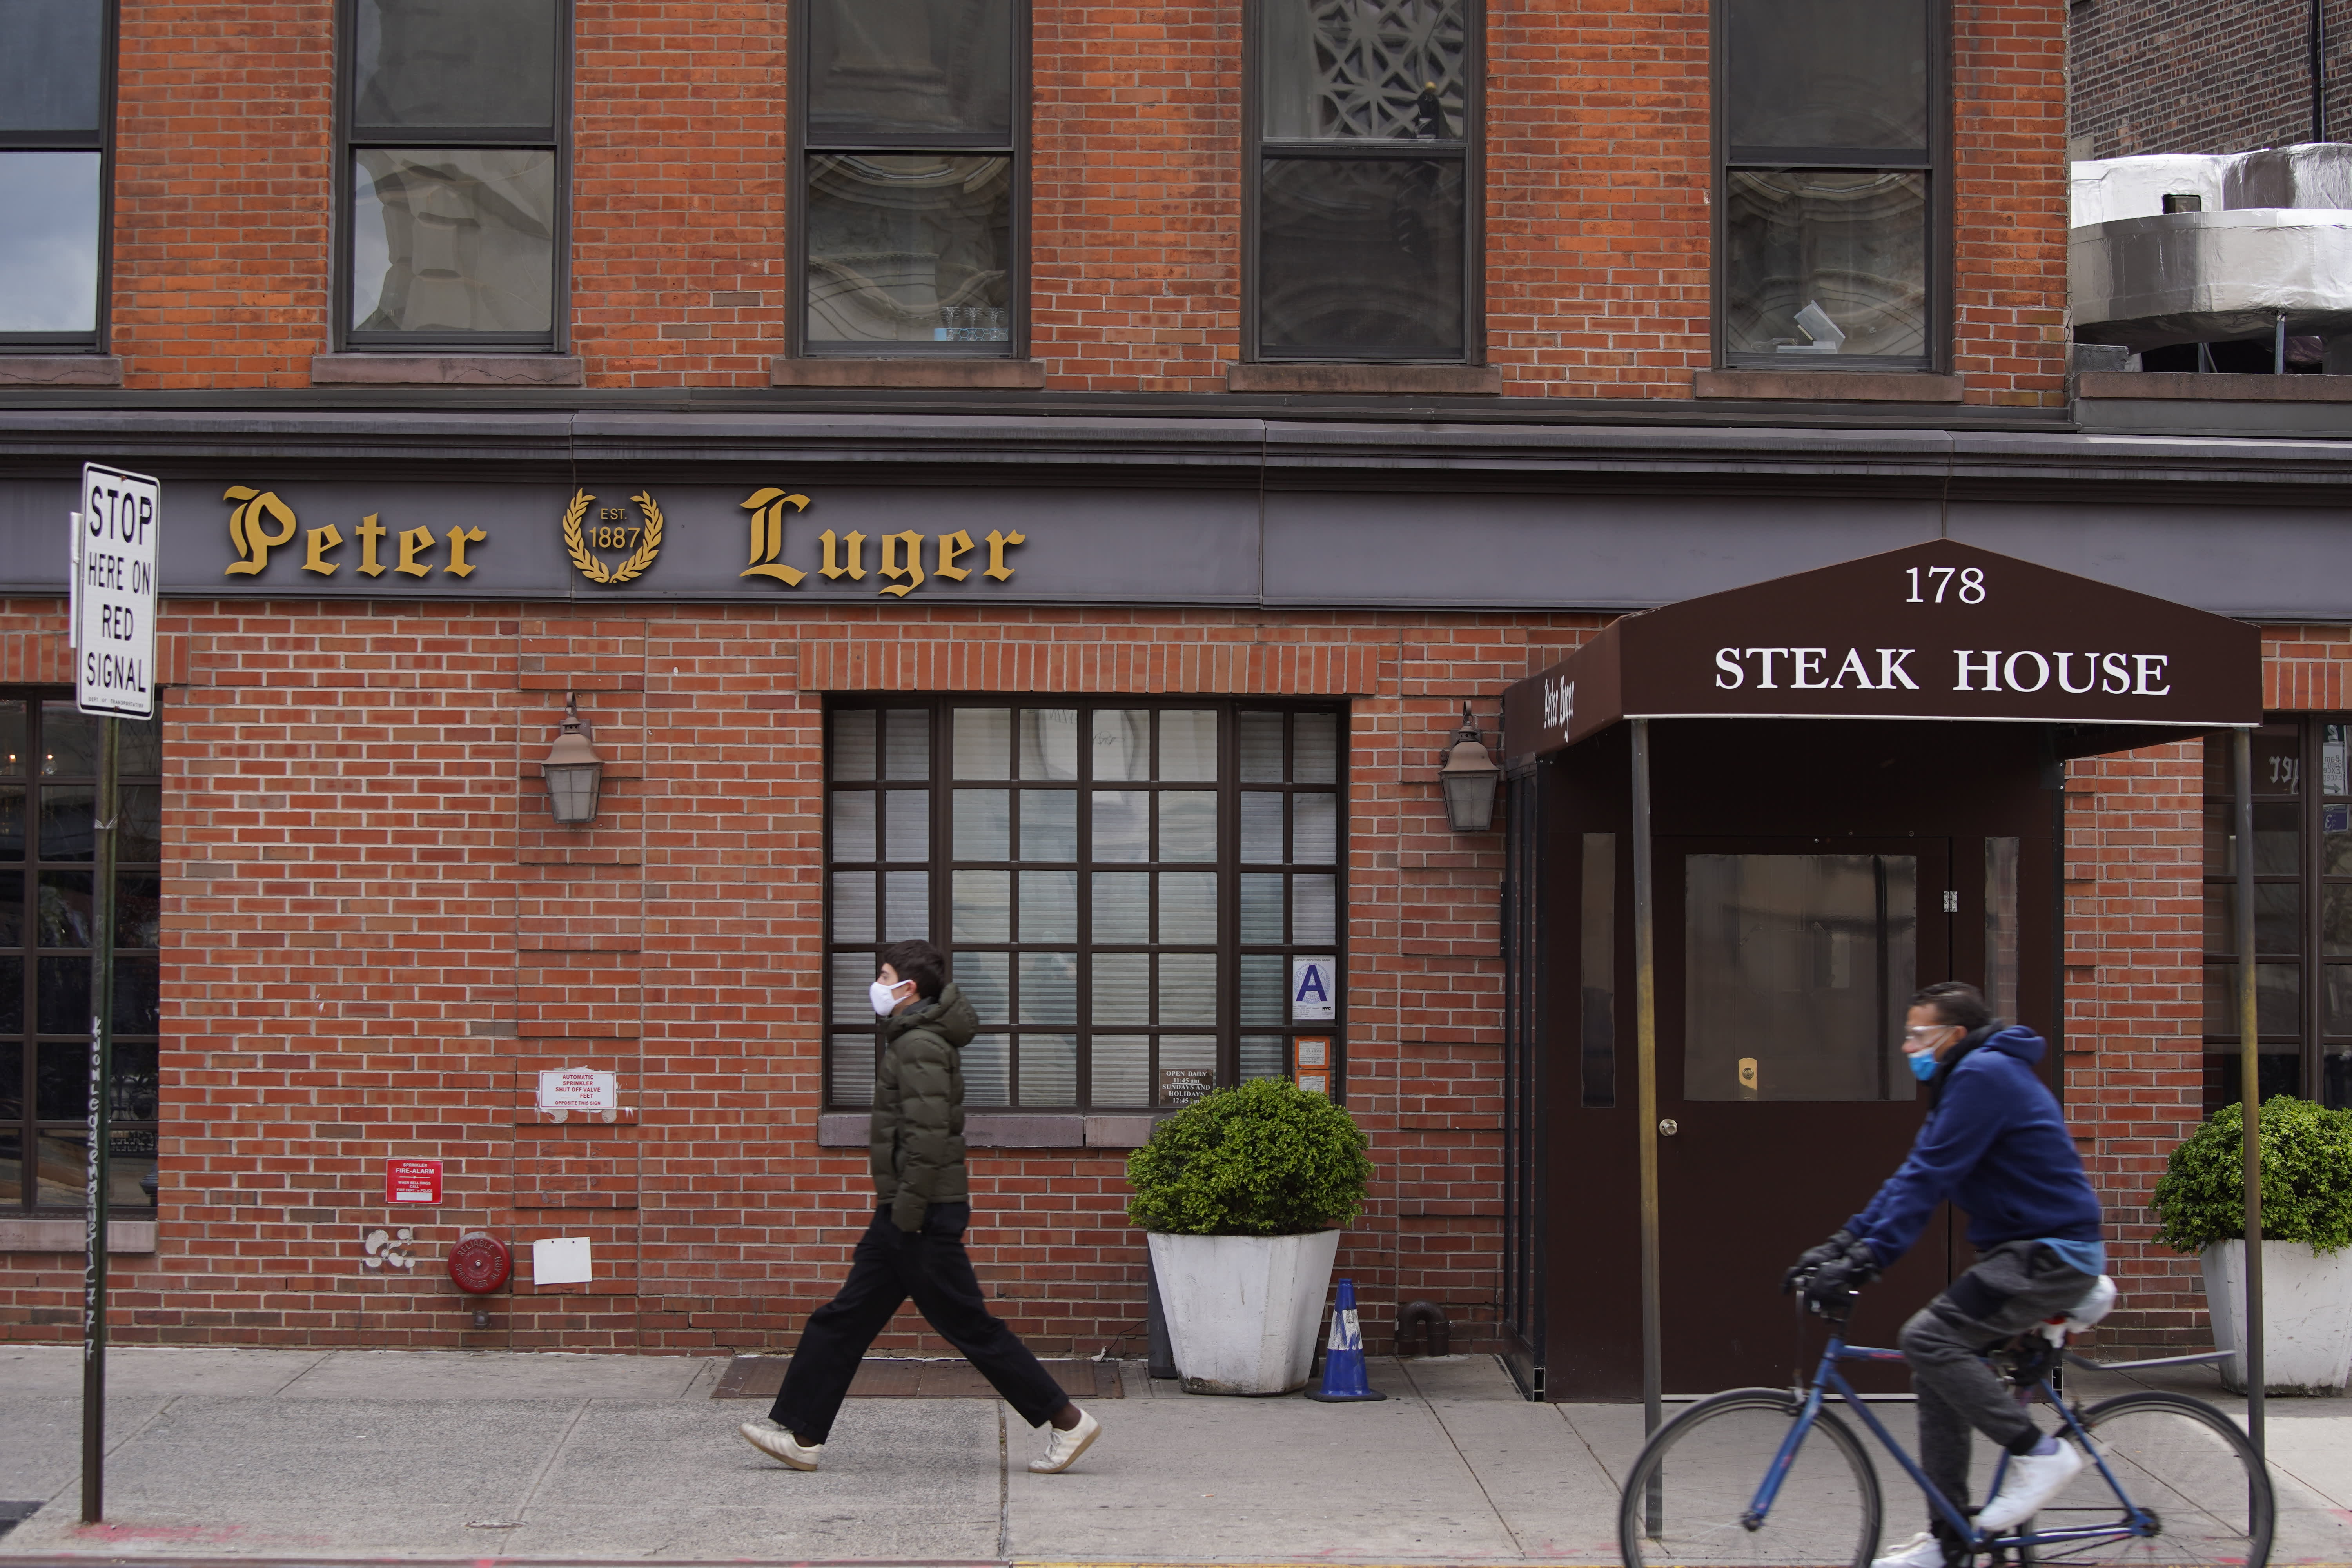 Peter Luger Steak House's offering delivery, accepting credit cards